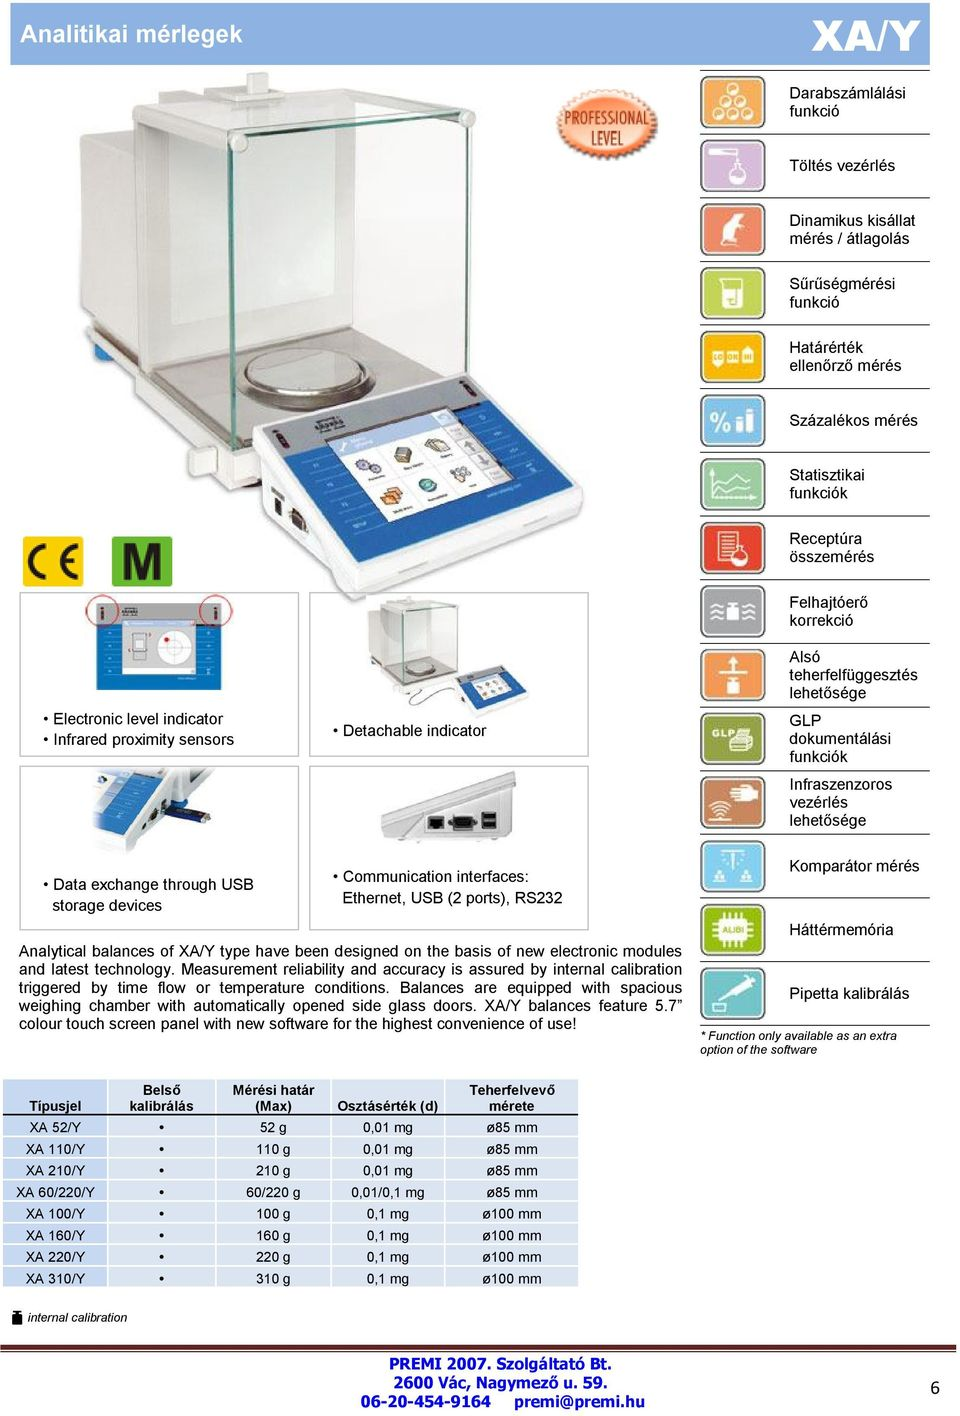 Analytical balances of XA/Y type have been designed on the basis of new electronic modules and latest technology.